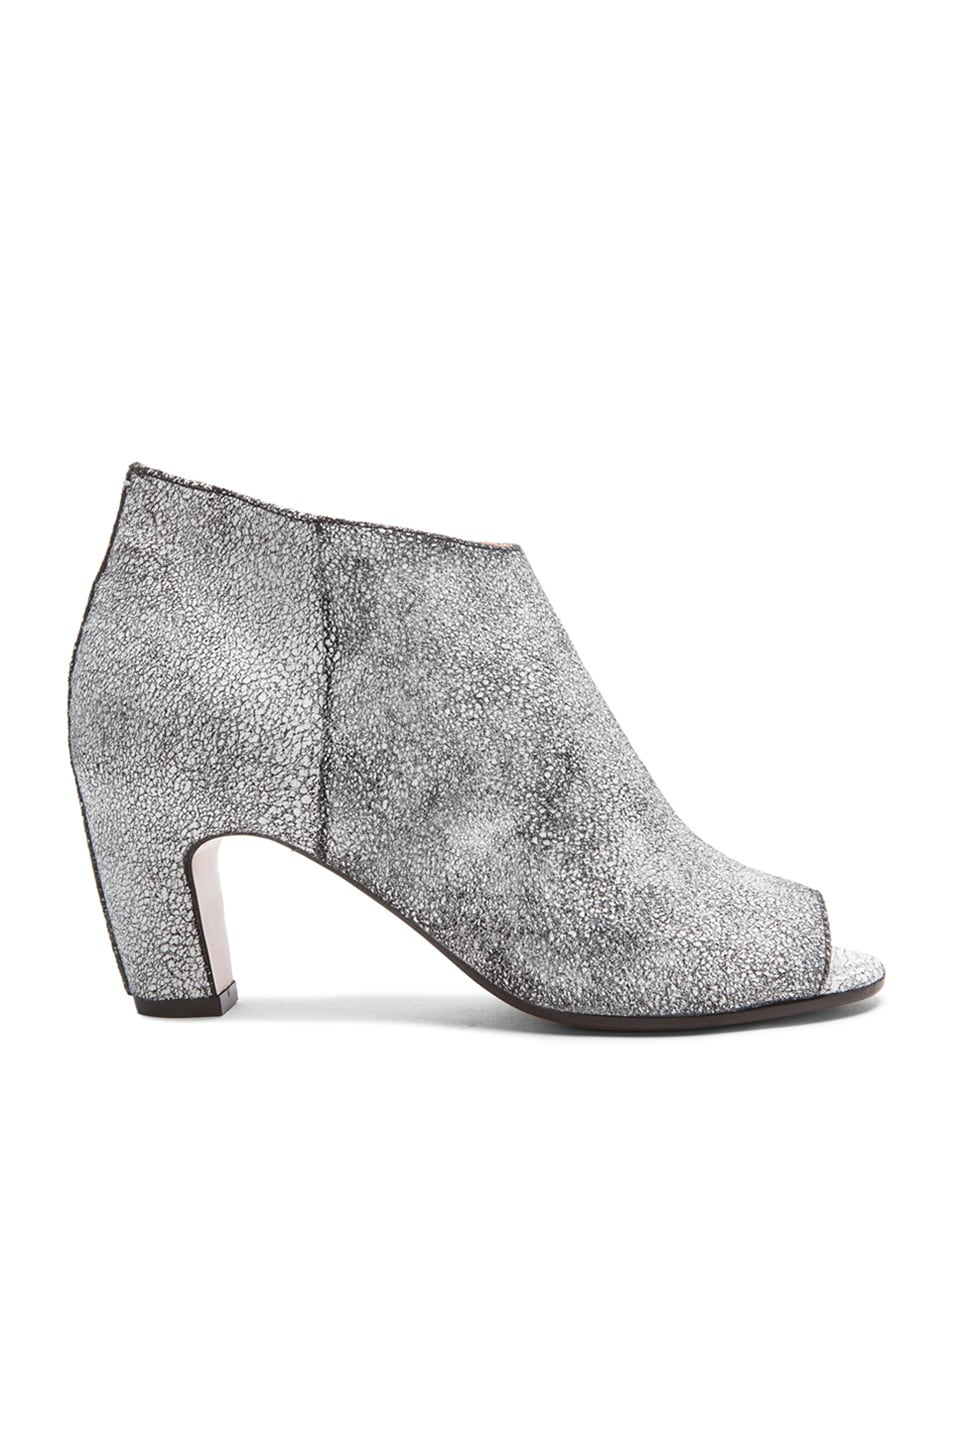 Image 1 of Maison Margiela Crackle Leather Booties in Optic Black & White